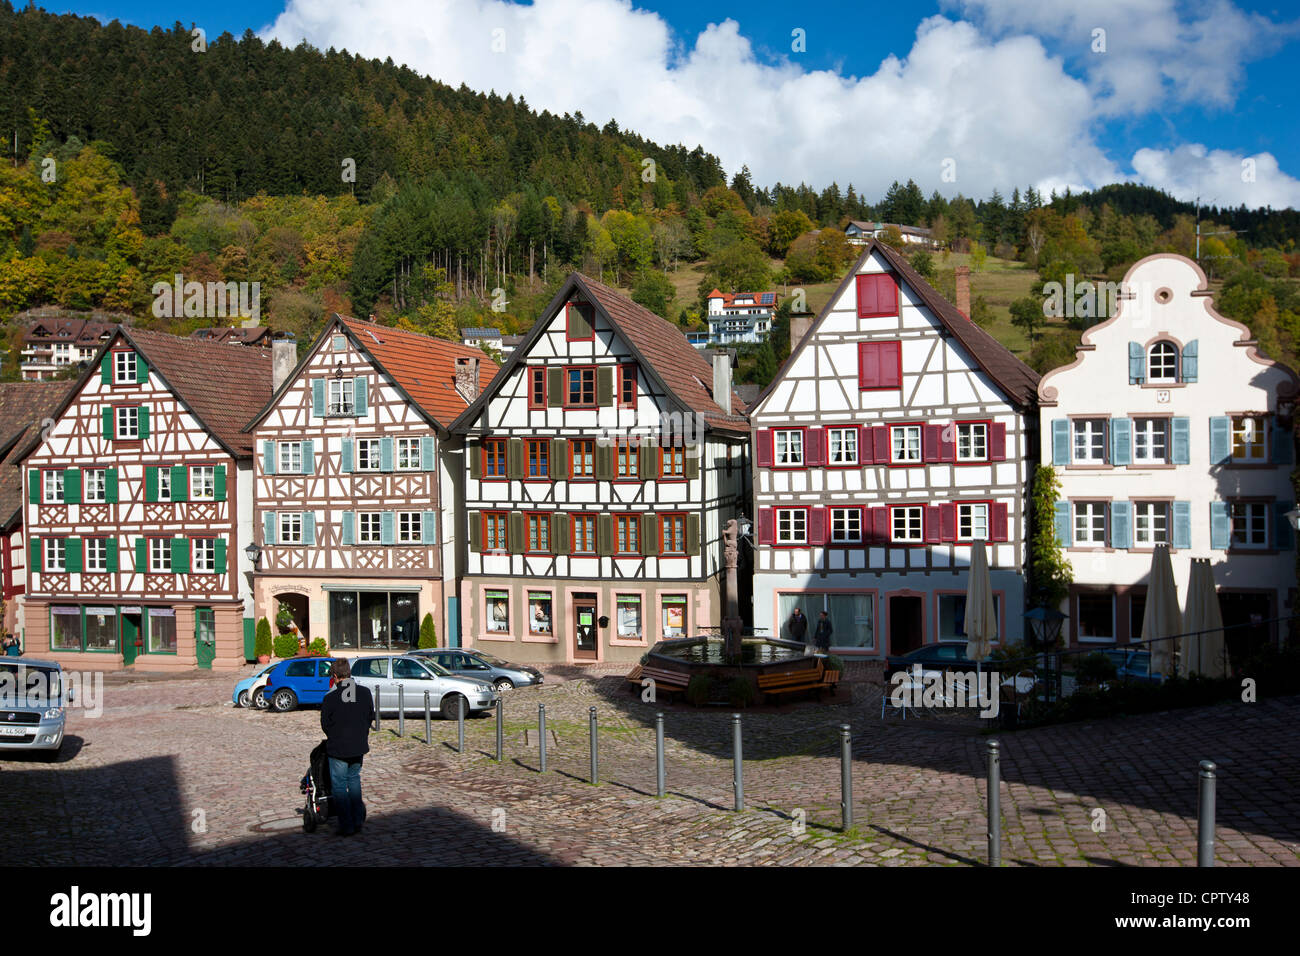 quaint timber framed houses in schiltach in the bavarian